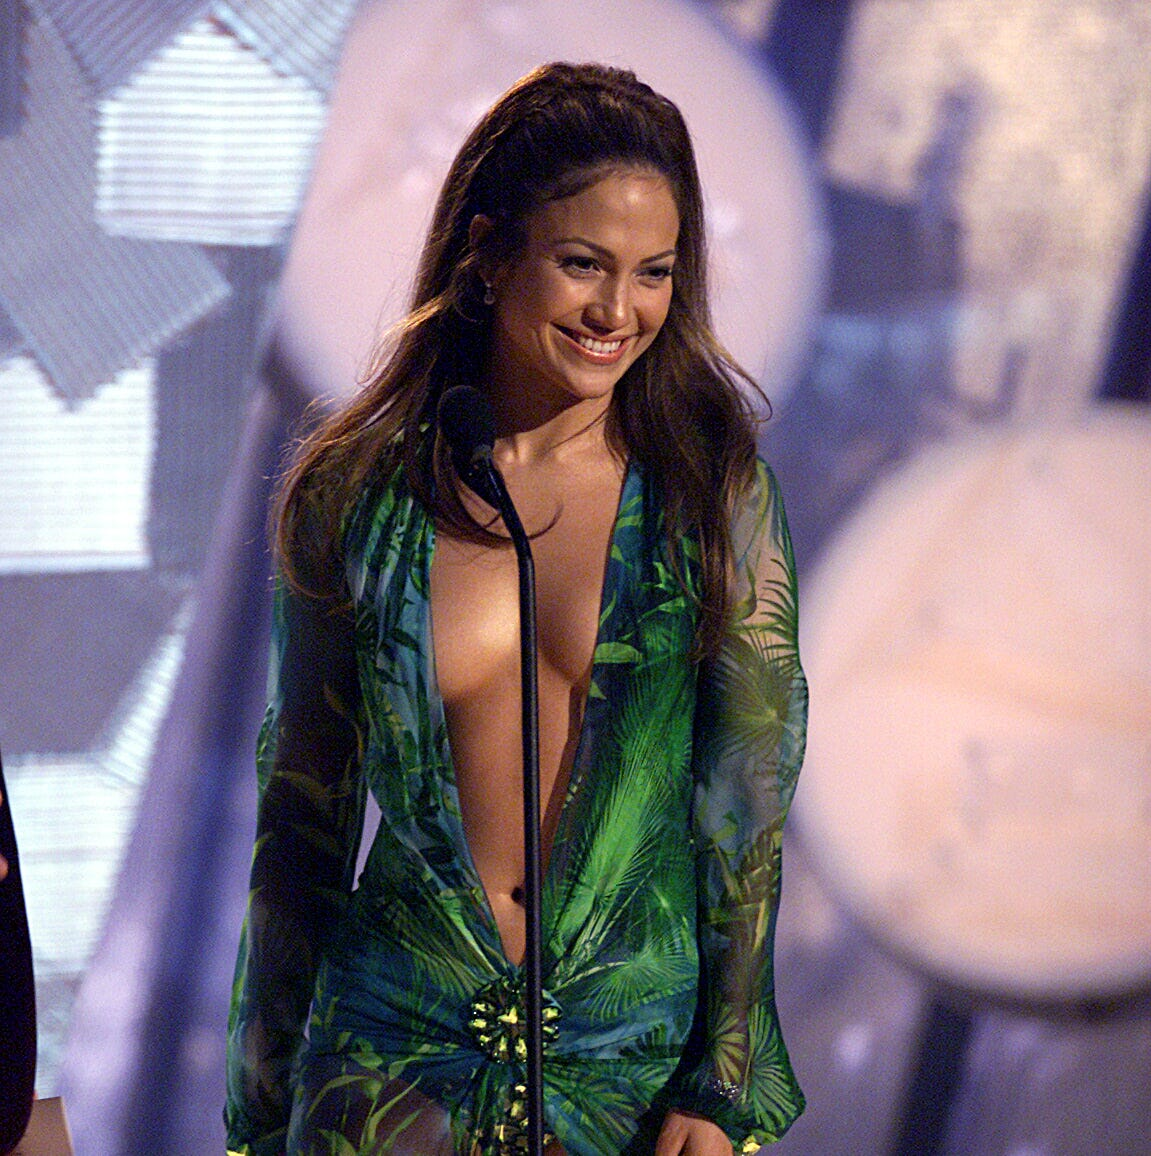 Jennifer Lopez wore that Versace dress while presenting an award at the Grammy Awards in 2000.